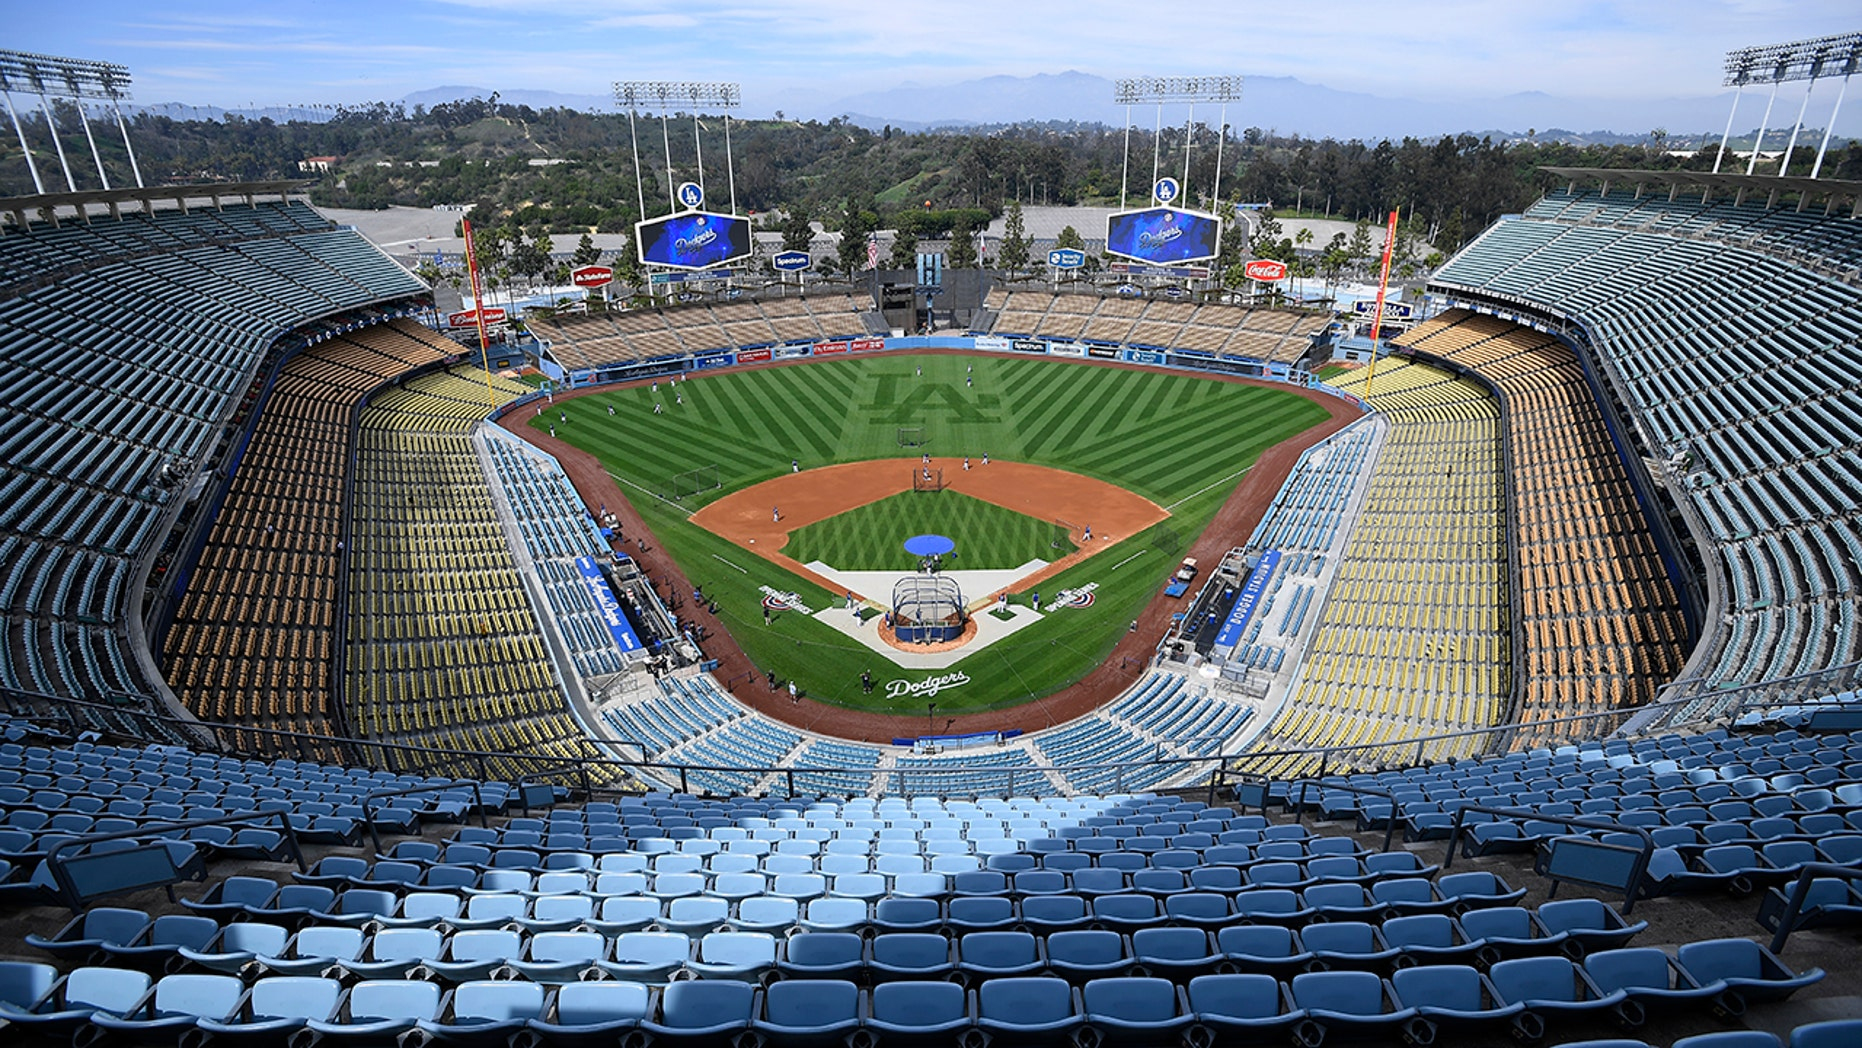 Fan was killed by foul ball last August at Dodger Stadium